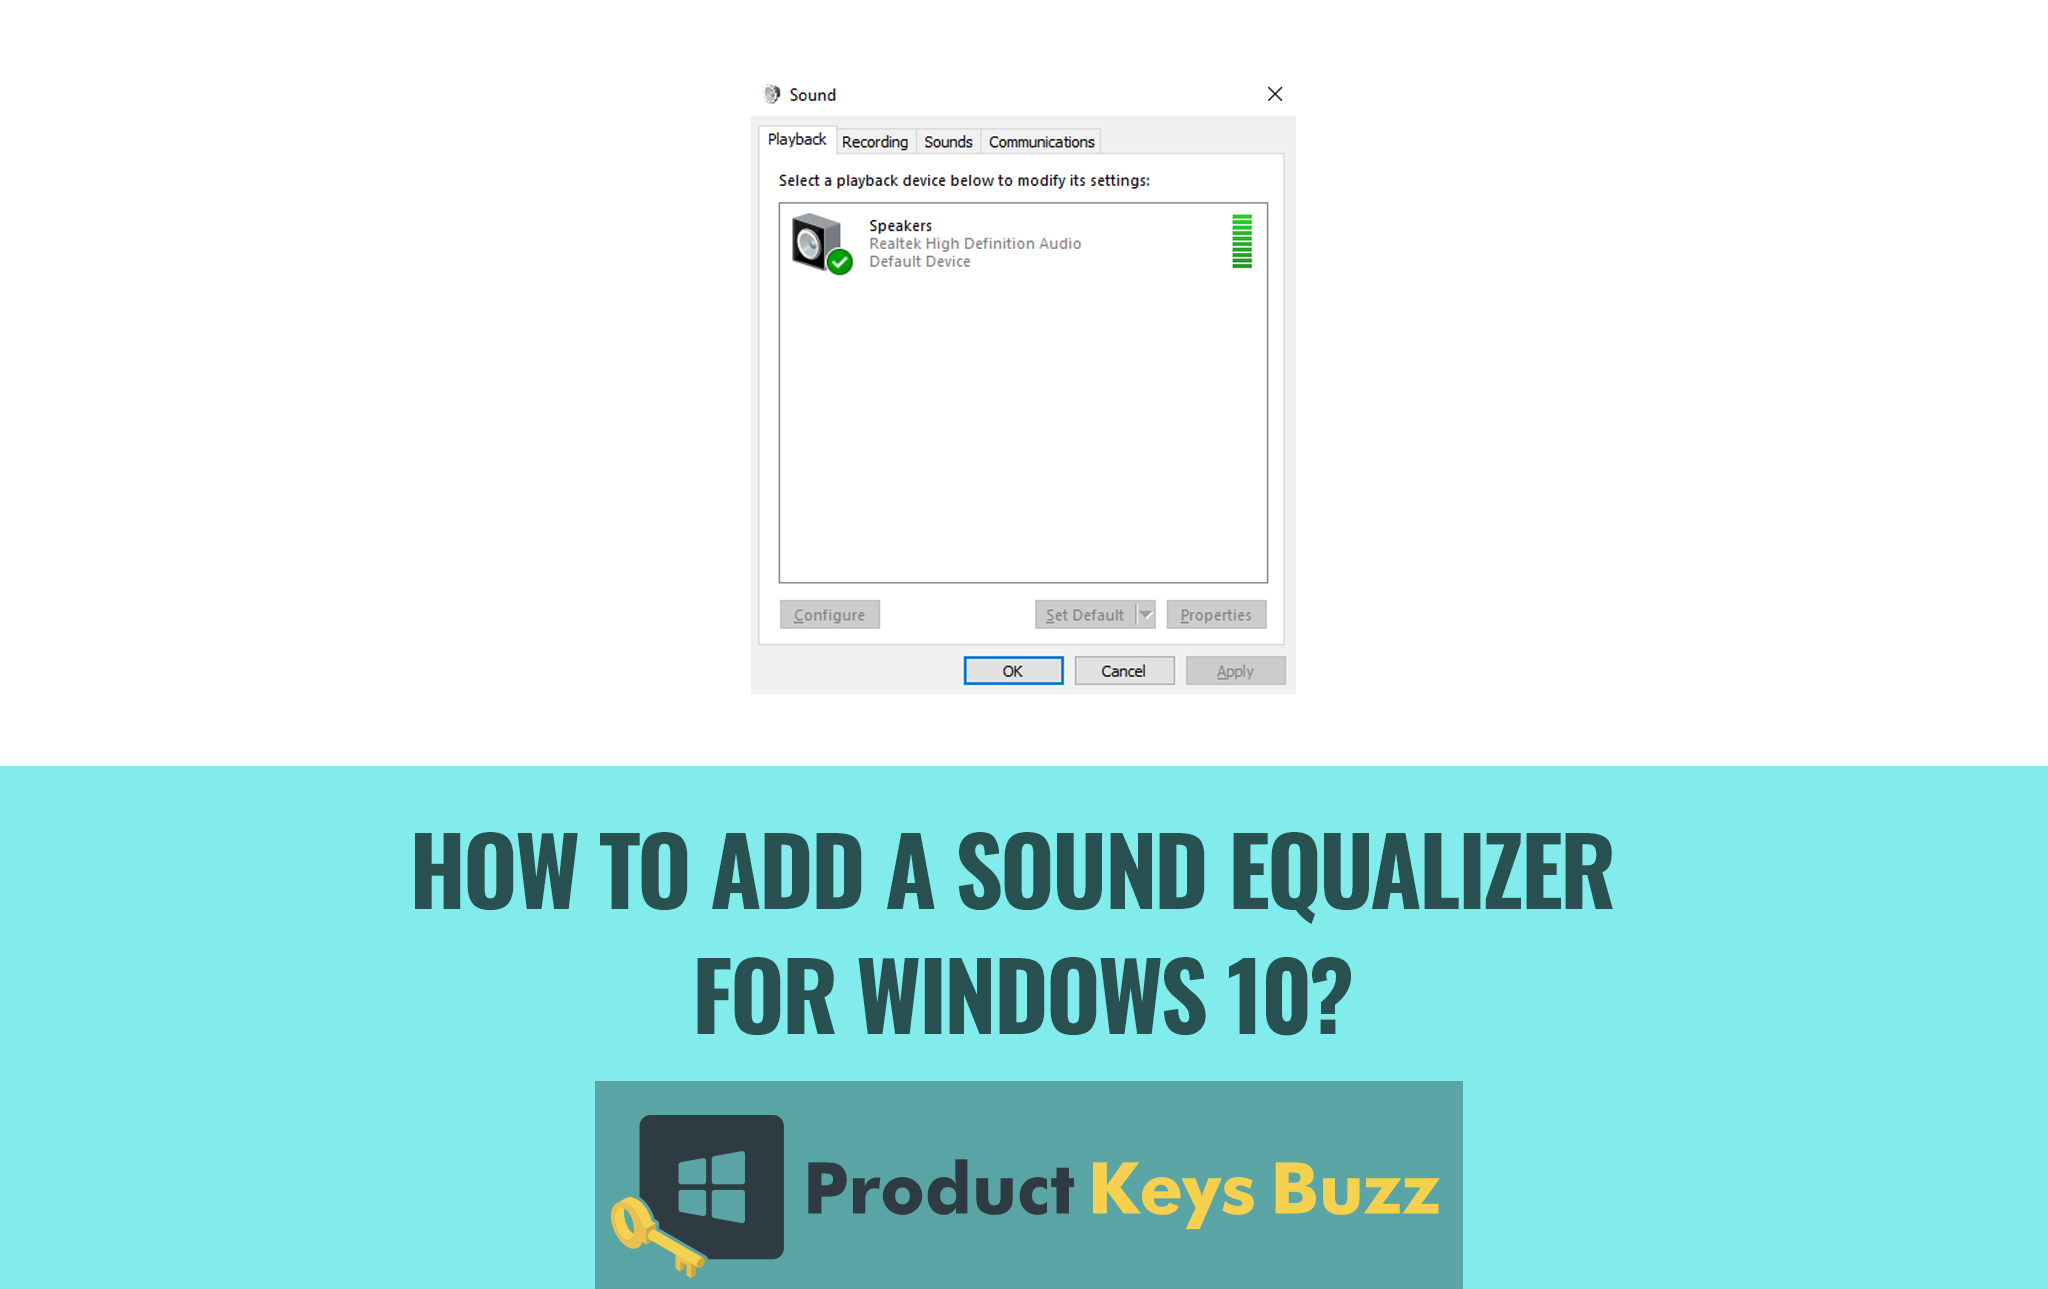 How to add a sound equalizer for Windows 10?